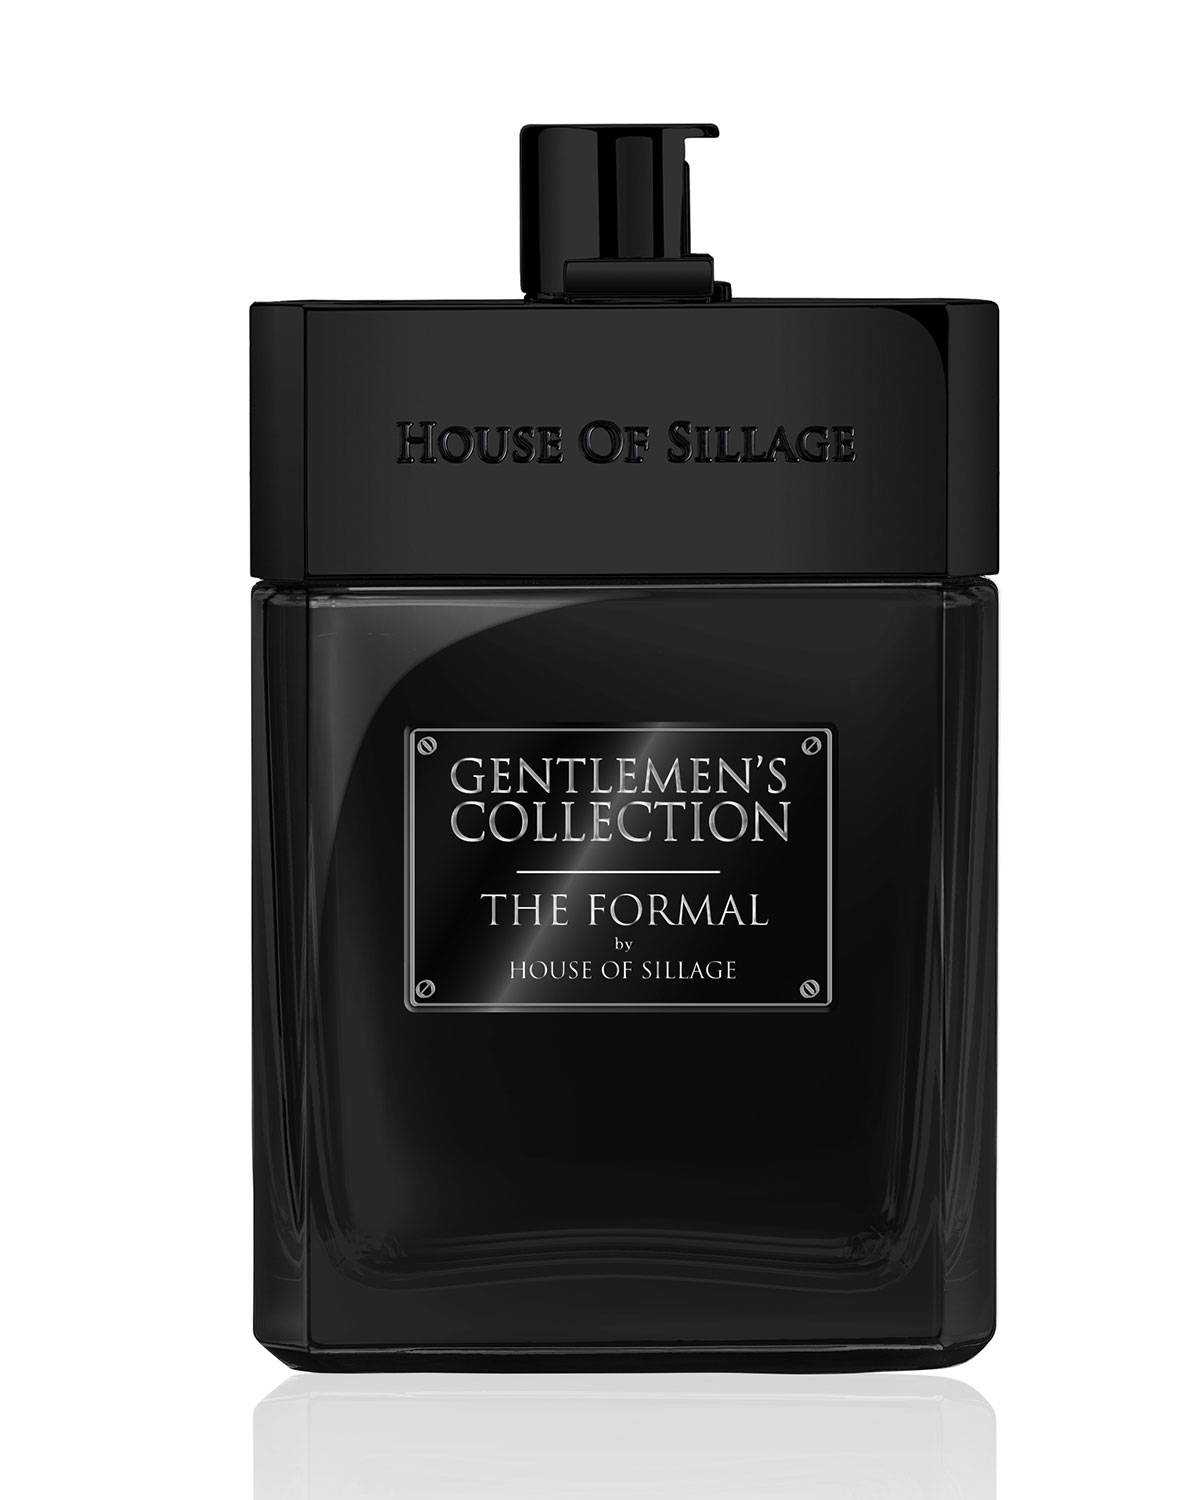 House of Sillage Gentlemen's Collection The Formal, 2.5 oz./ 75 mL